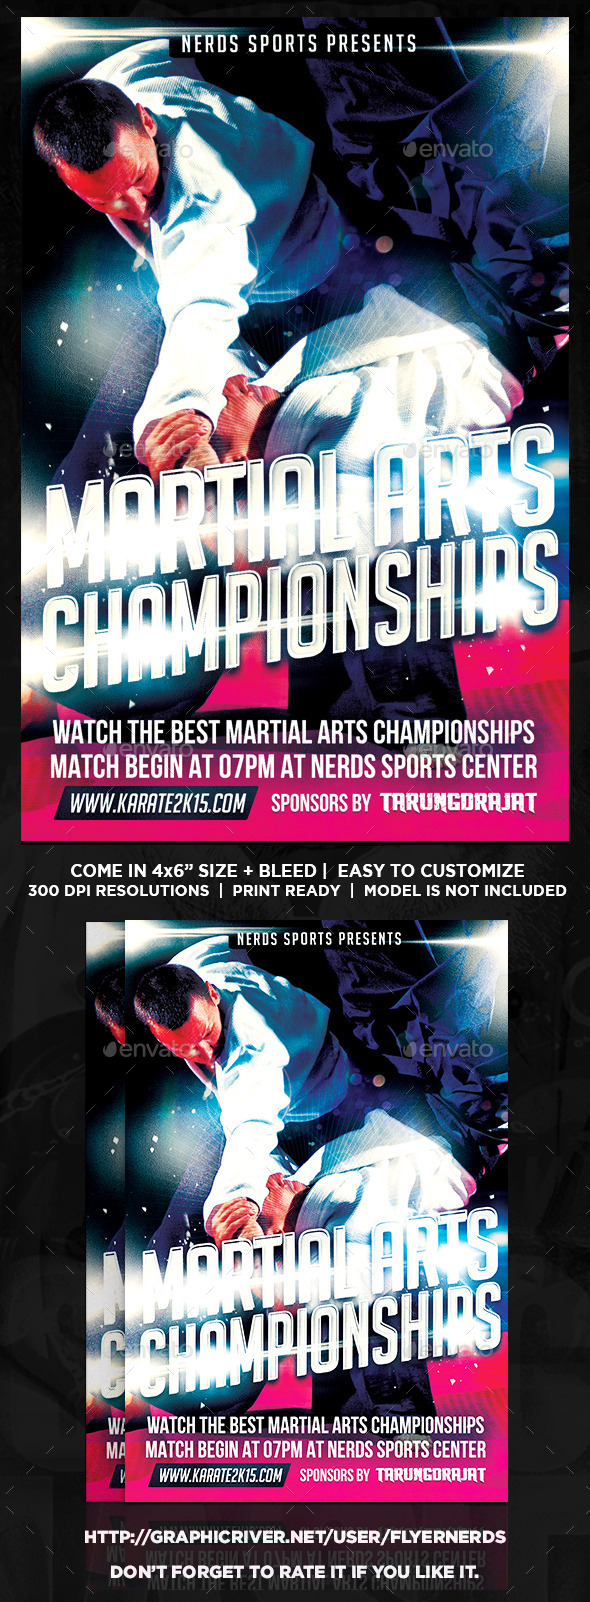 GraphicRiver Martial Arts 2K15 Championships Sports Flyer 10534694